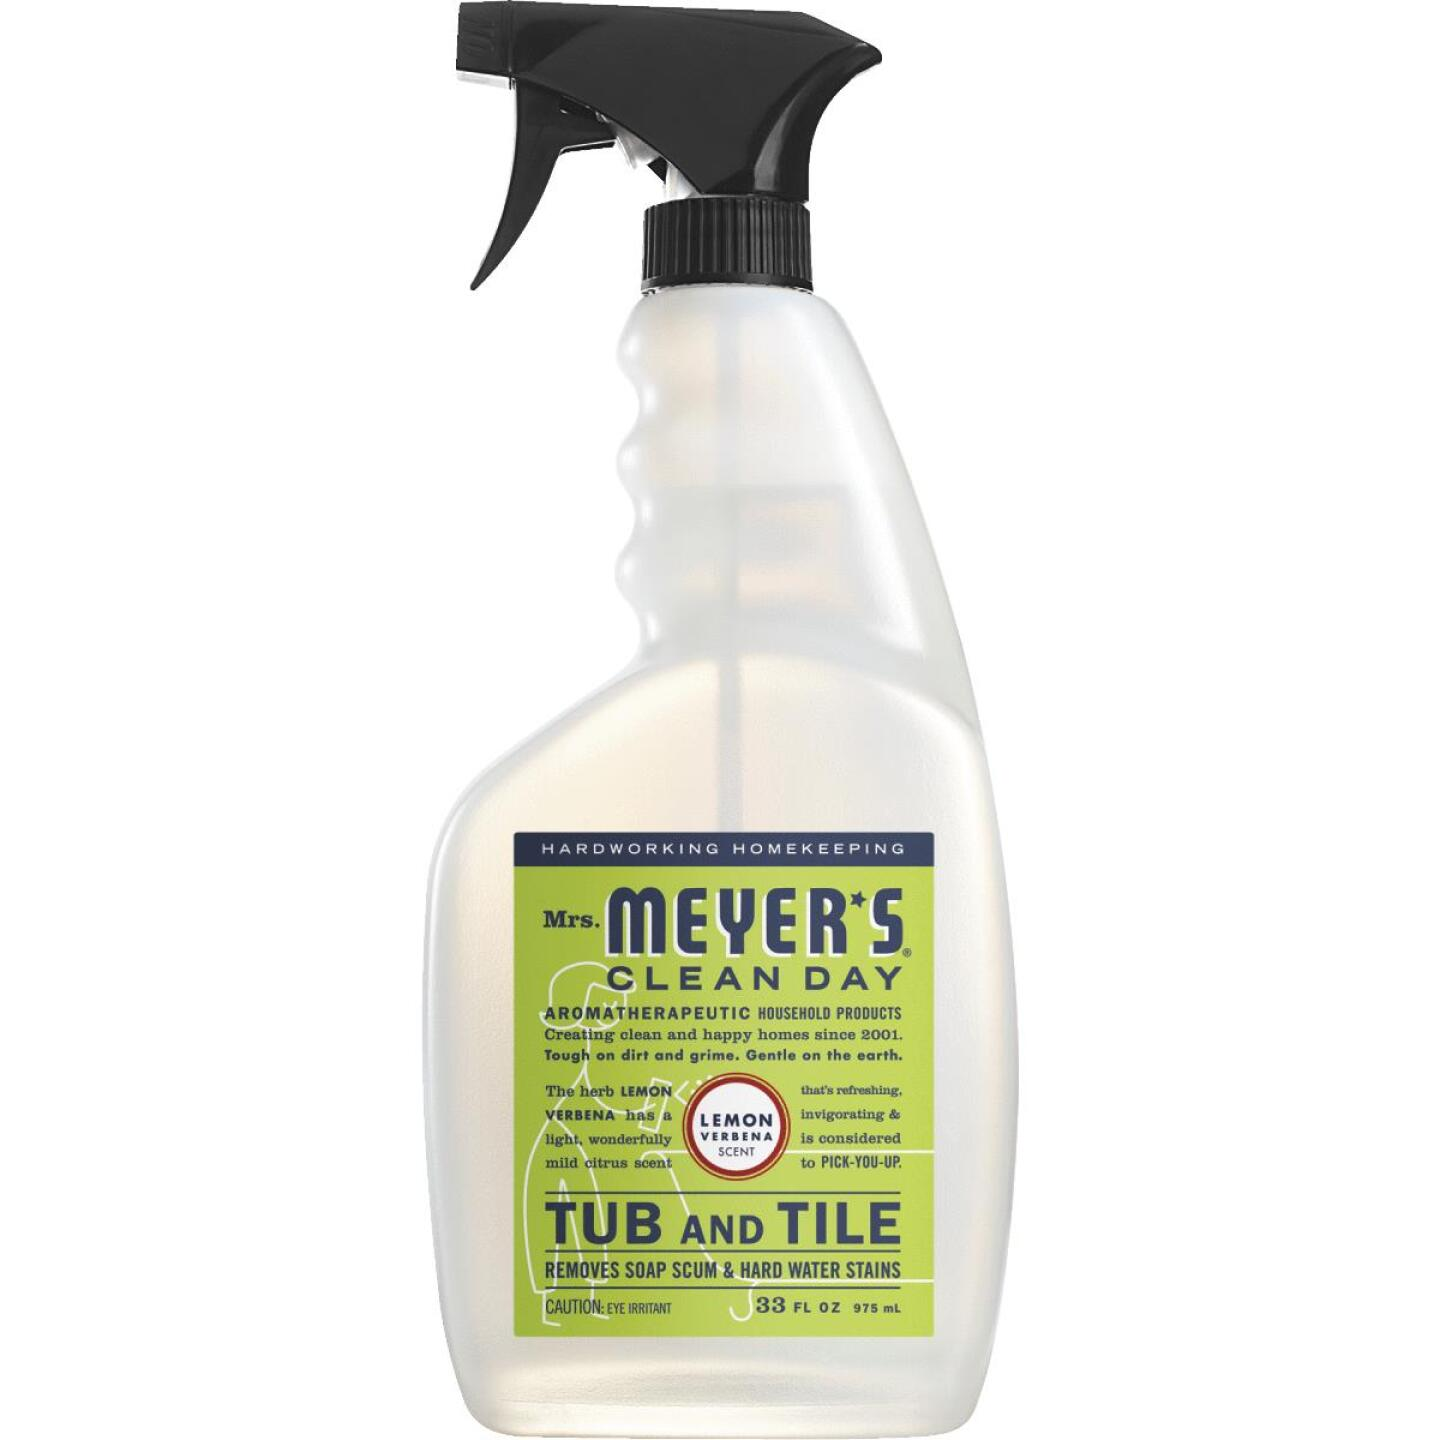 Mrs. Meyer's Clean Day 33 Oz. Lemon Verbena Tub & Tile Bathroom Cleaner Image 1